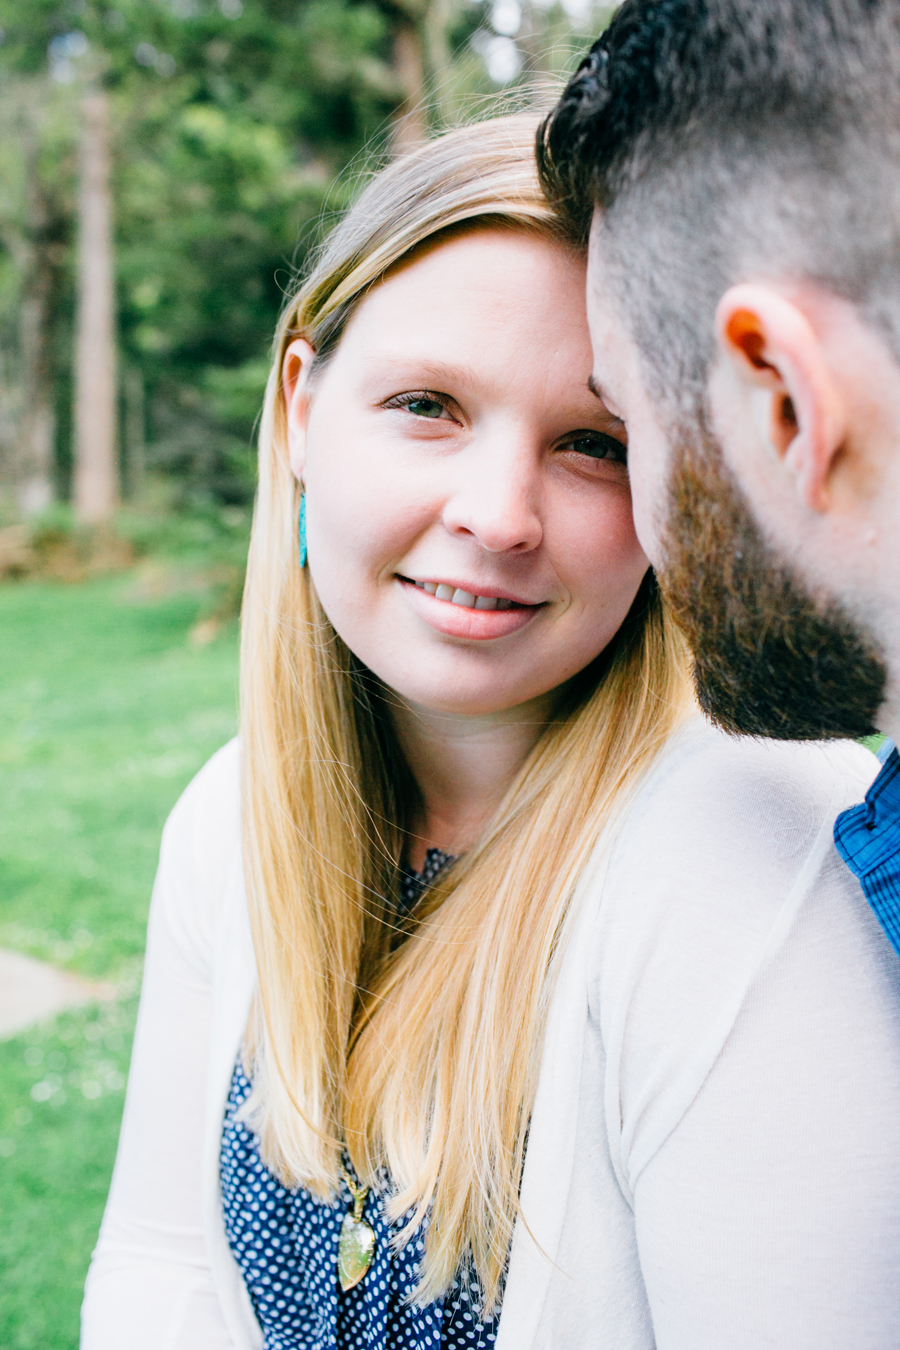 003-bellingham-skagit-engagement-photographer-photo-bowman-bay-jessie.jpg